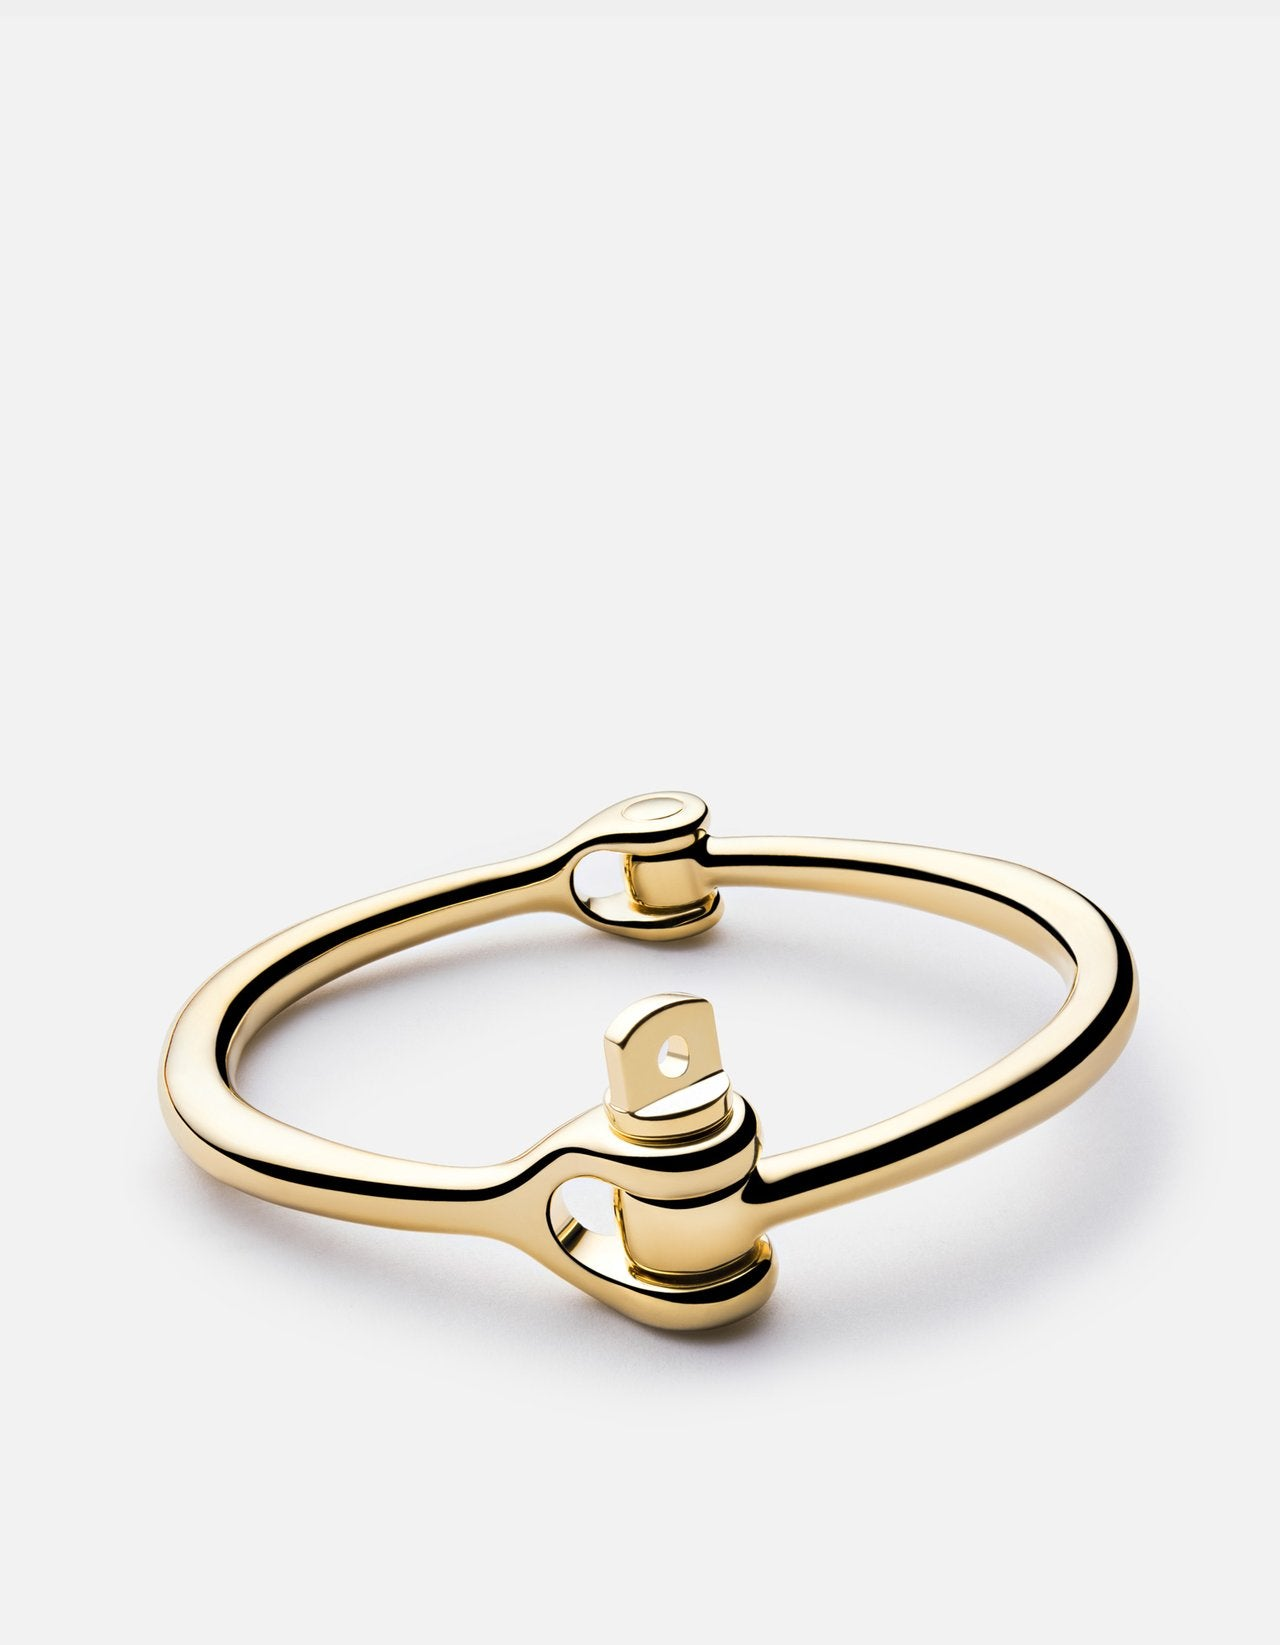 REEVE CUFF BRACELET GOLD POLISHED